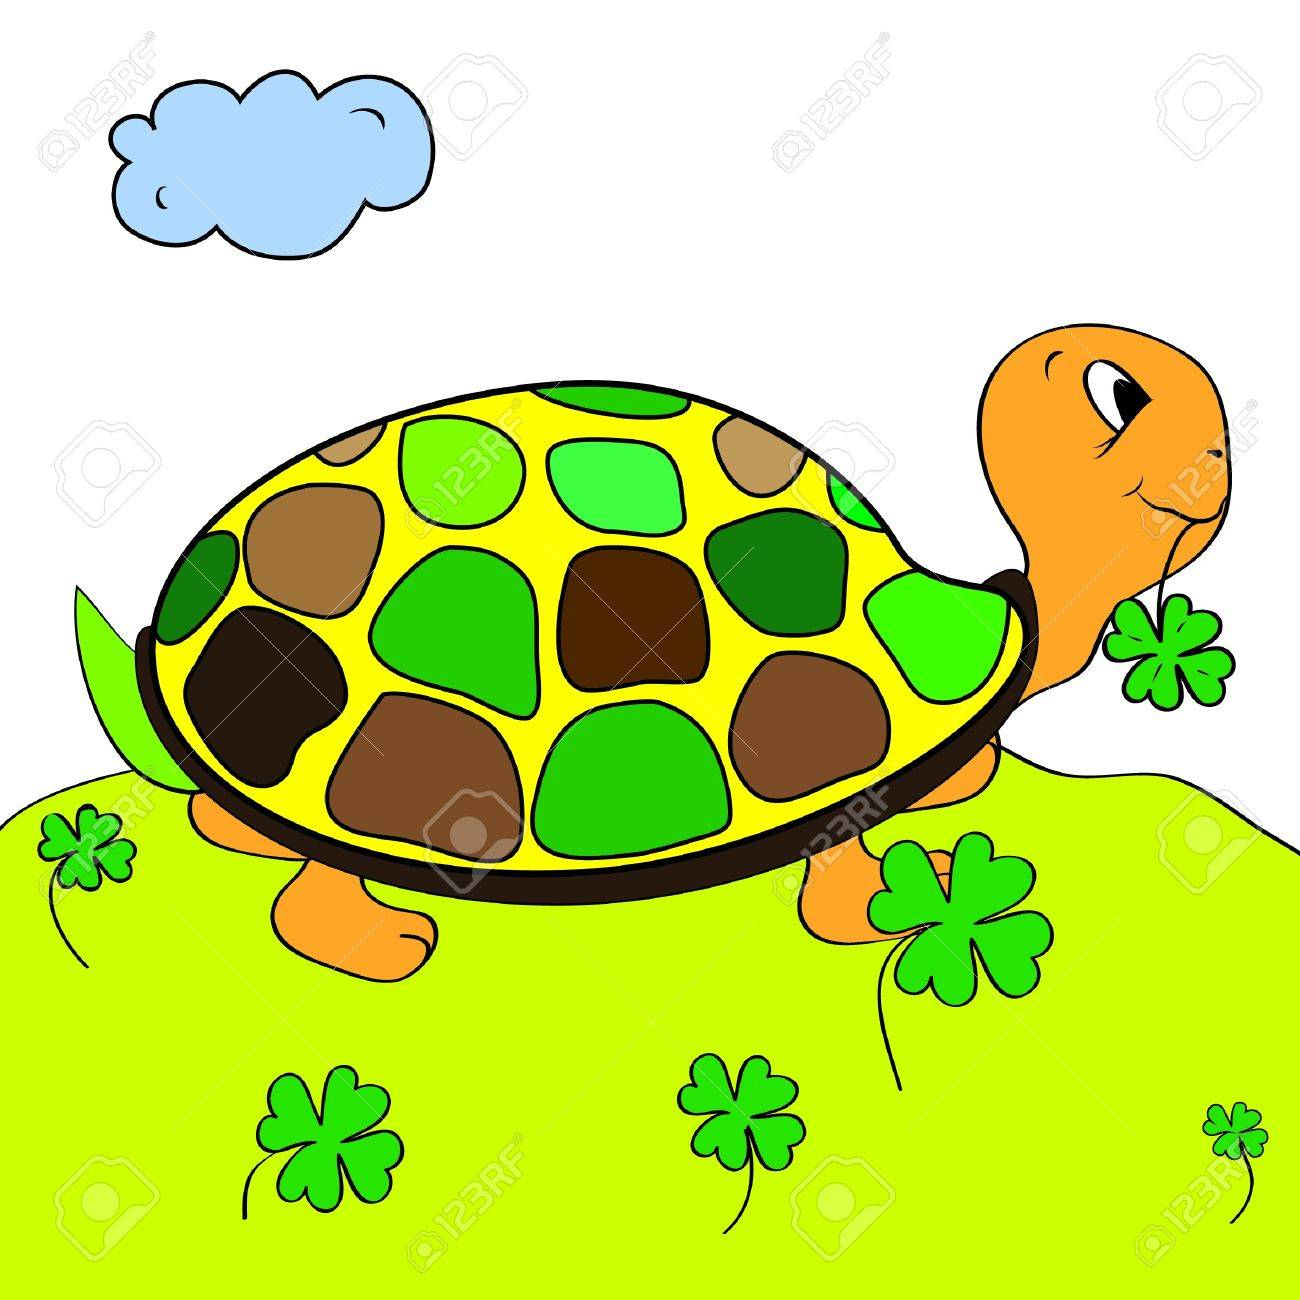 Uncategorized Tortoise Pictures For Kids color page tortoise turtle royalty free cliparts vectors and stock vector 15191188